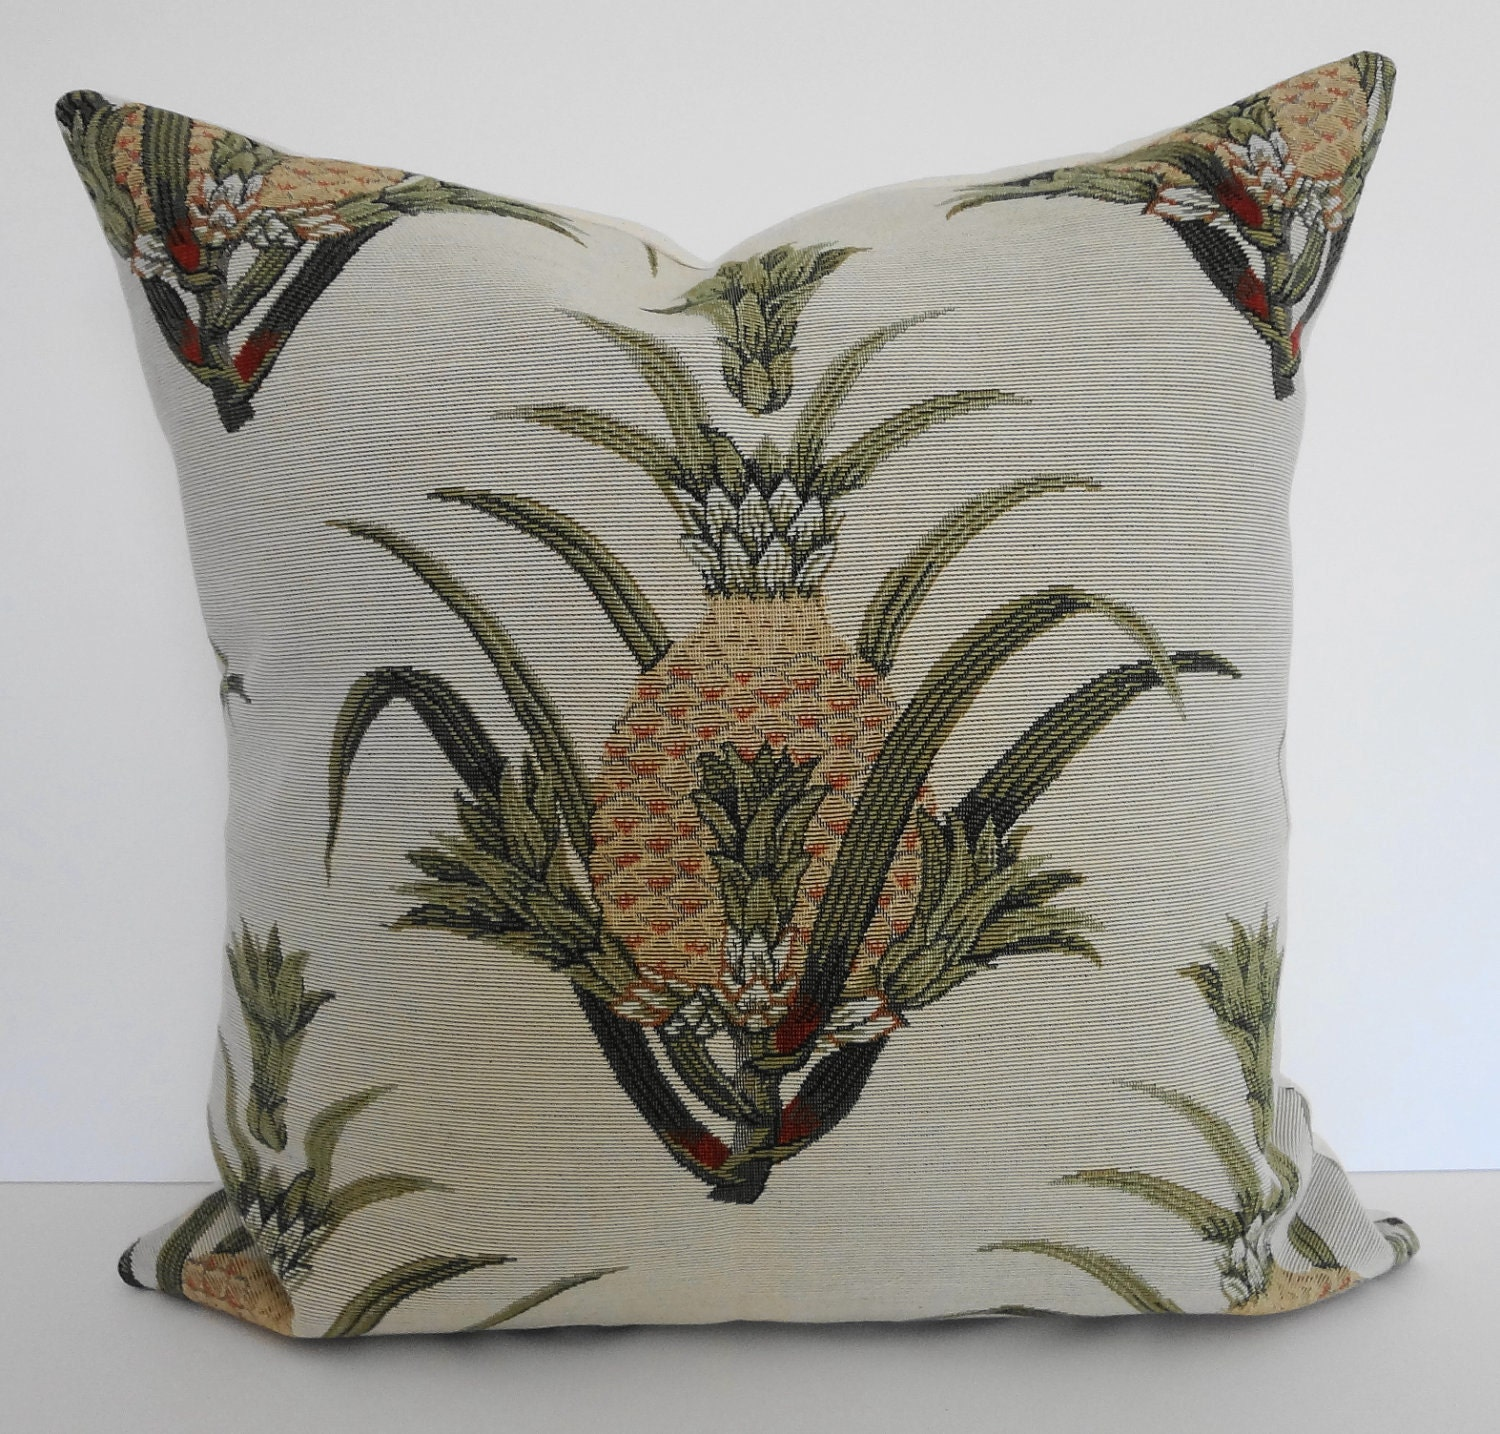 Pineapple Decorative Pillow Cover Tropical Designer Throw